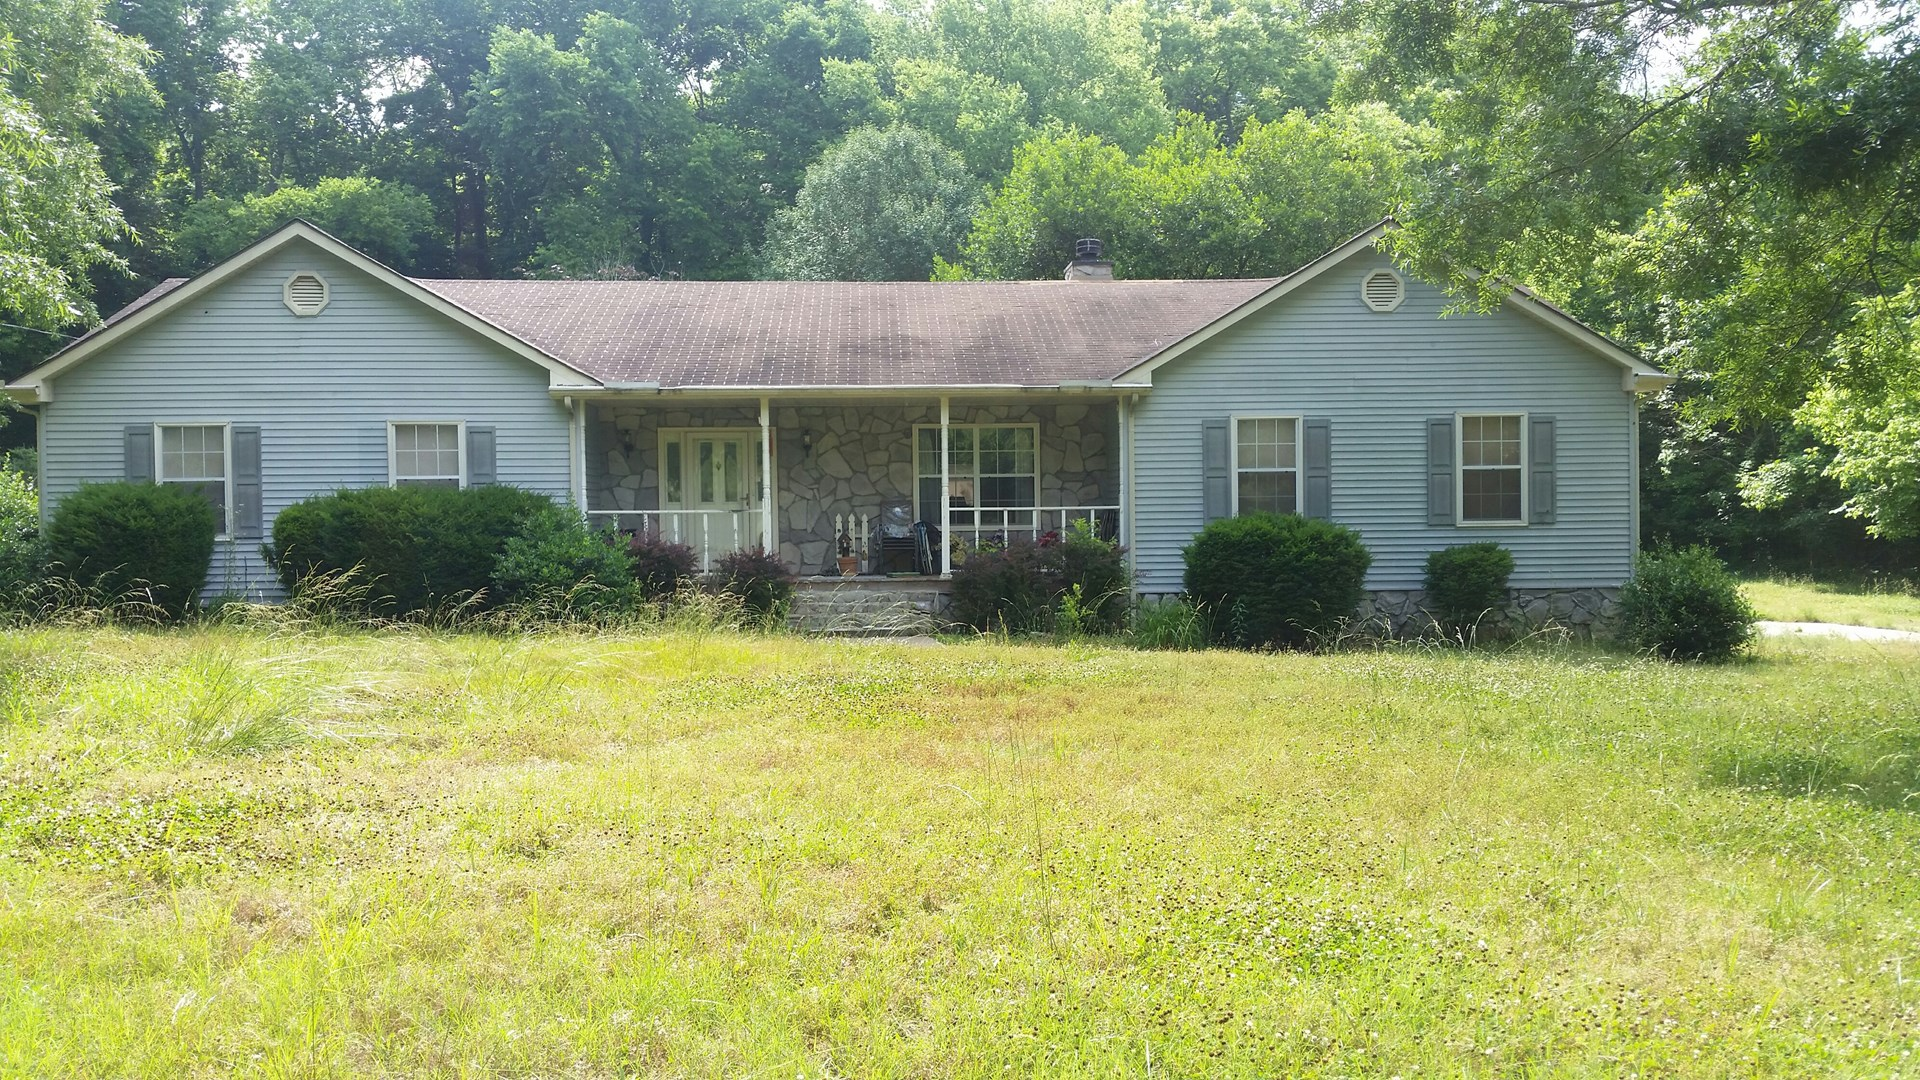 REAL ESTATE & PERSONAL PROPERTY AUCTION/3483 PULASKI HWY